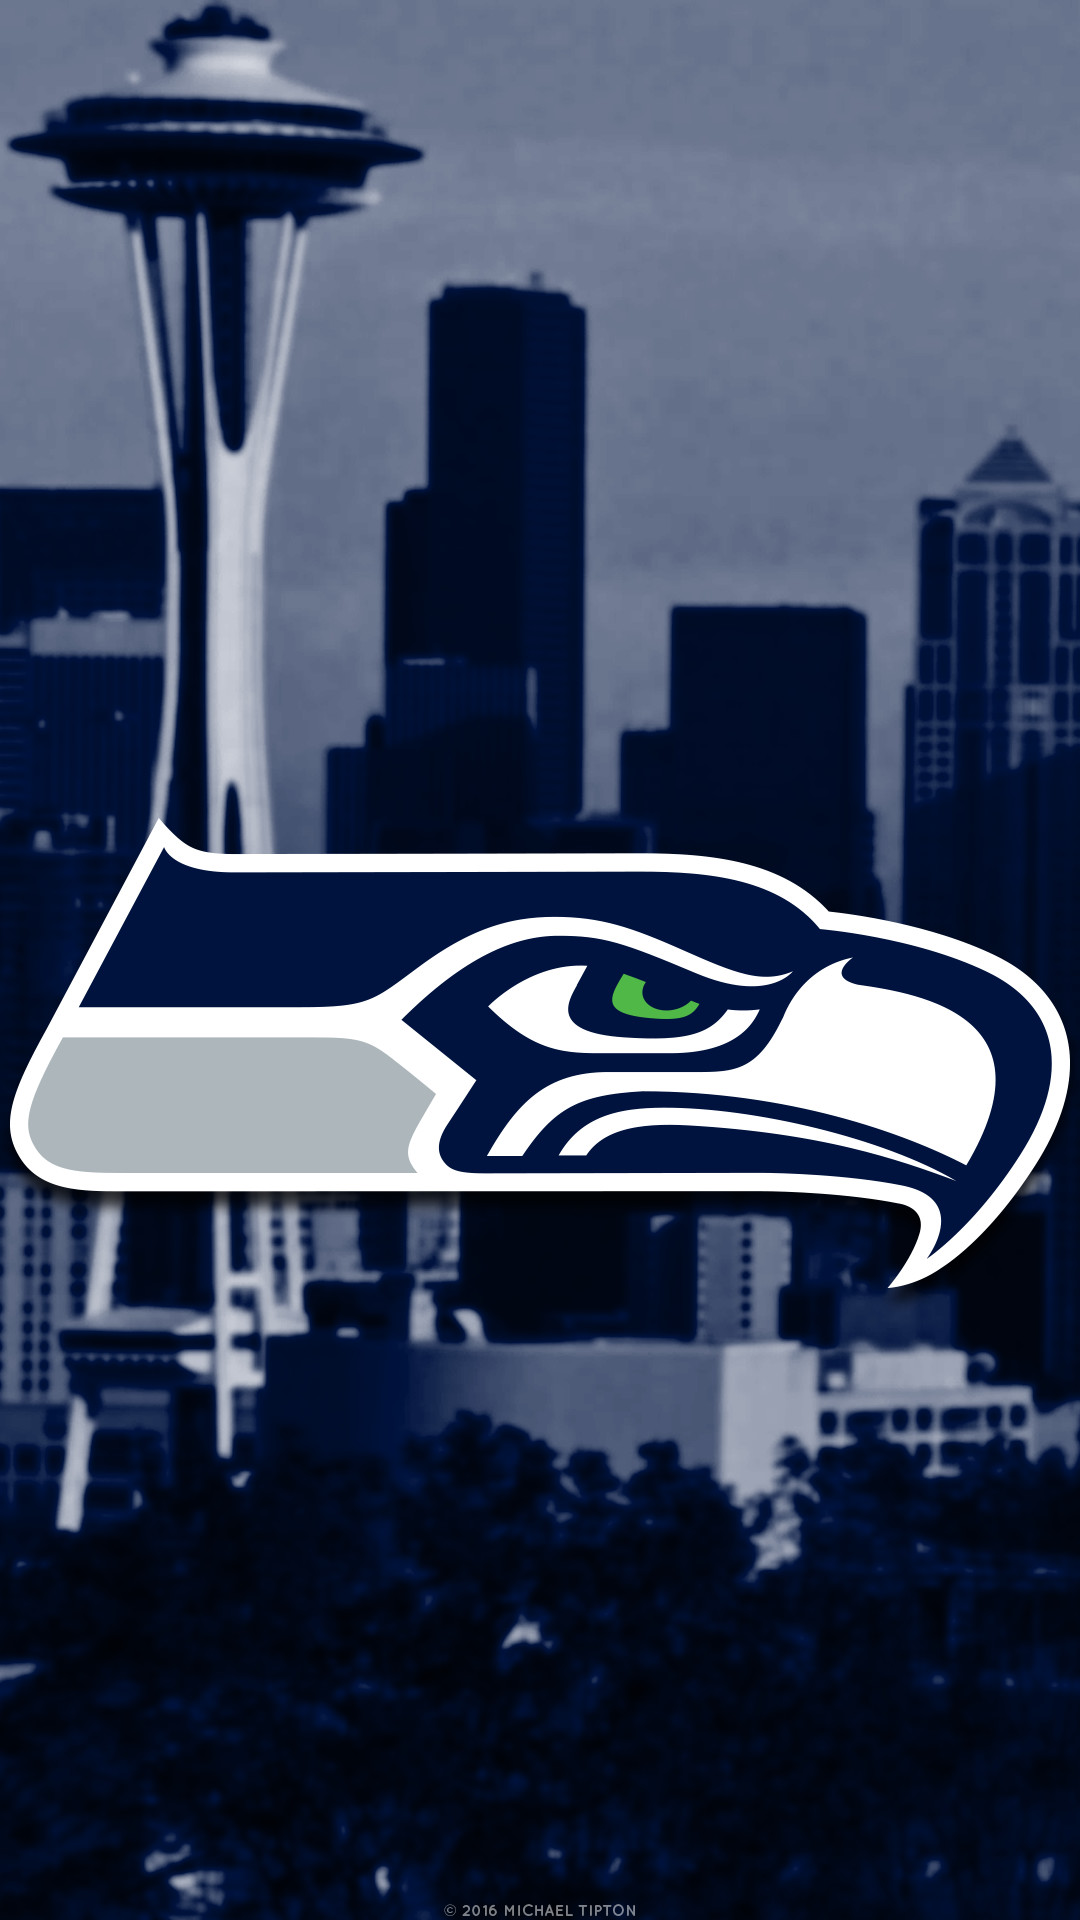 1080x1920 NFL Super Bowl Seattle Seahawks New England Patriots